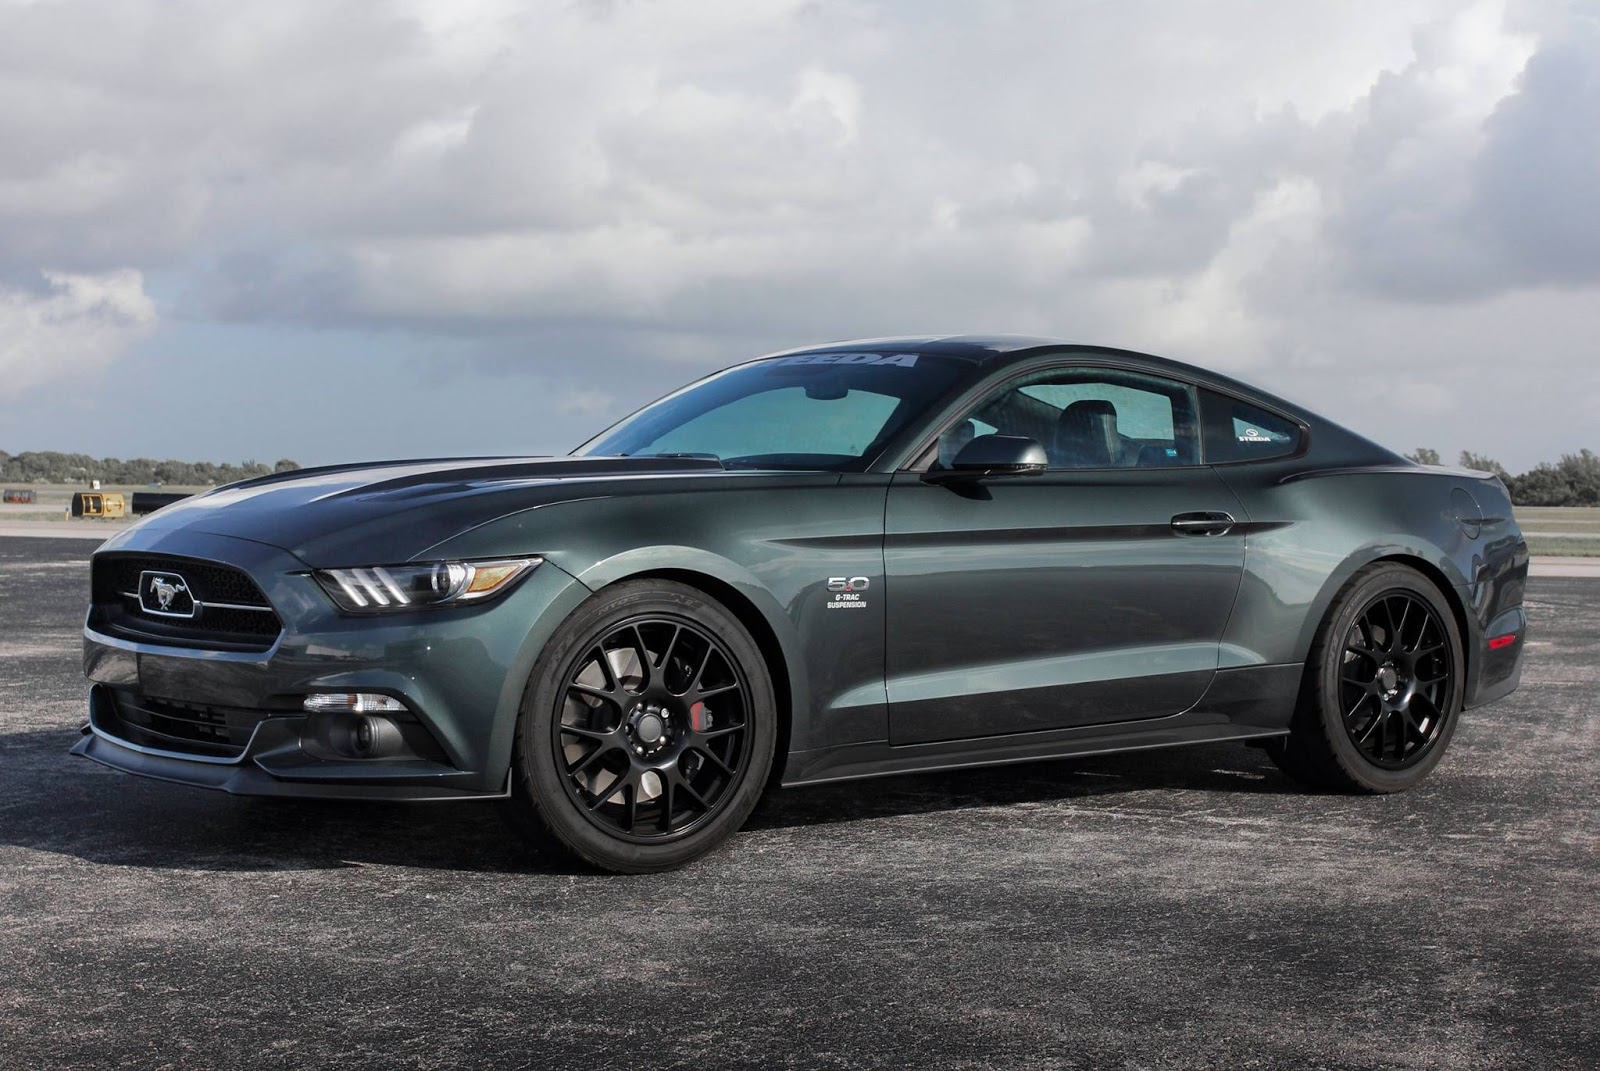 2018 Mustang Gt Cold Air Intake >> Steeda Reveals 2015 Ford Mustang Upgrades - GTspirit